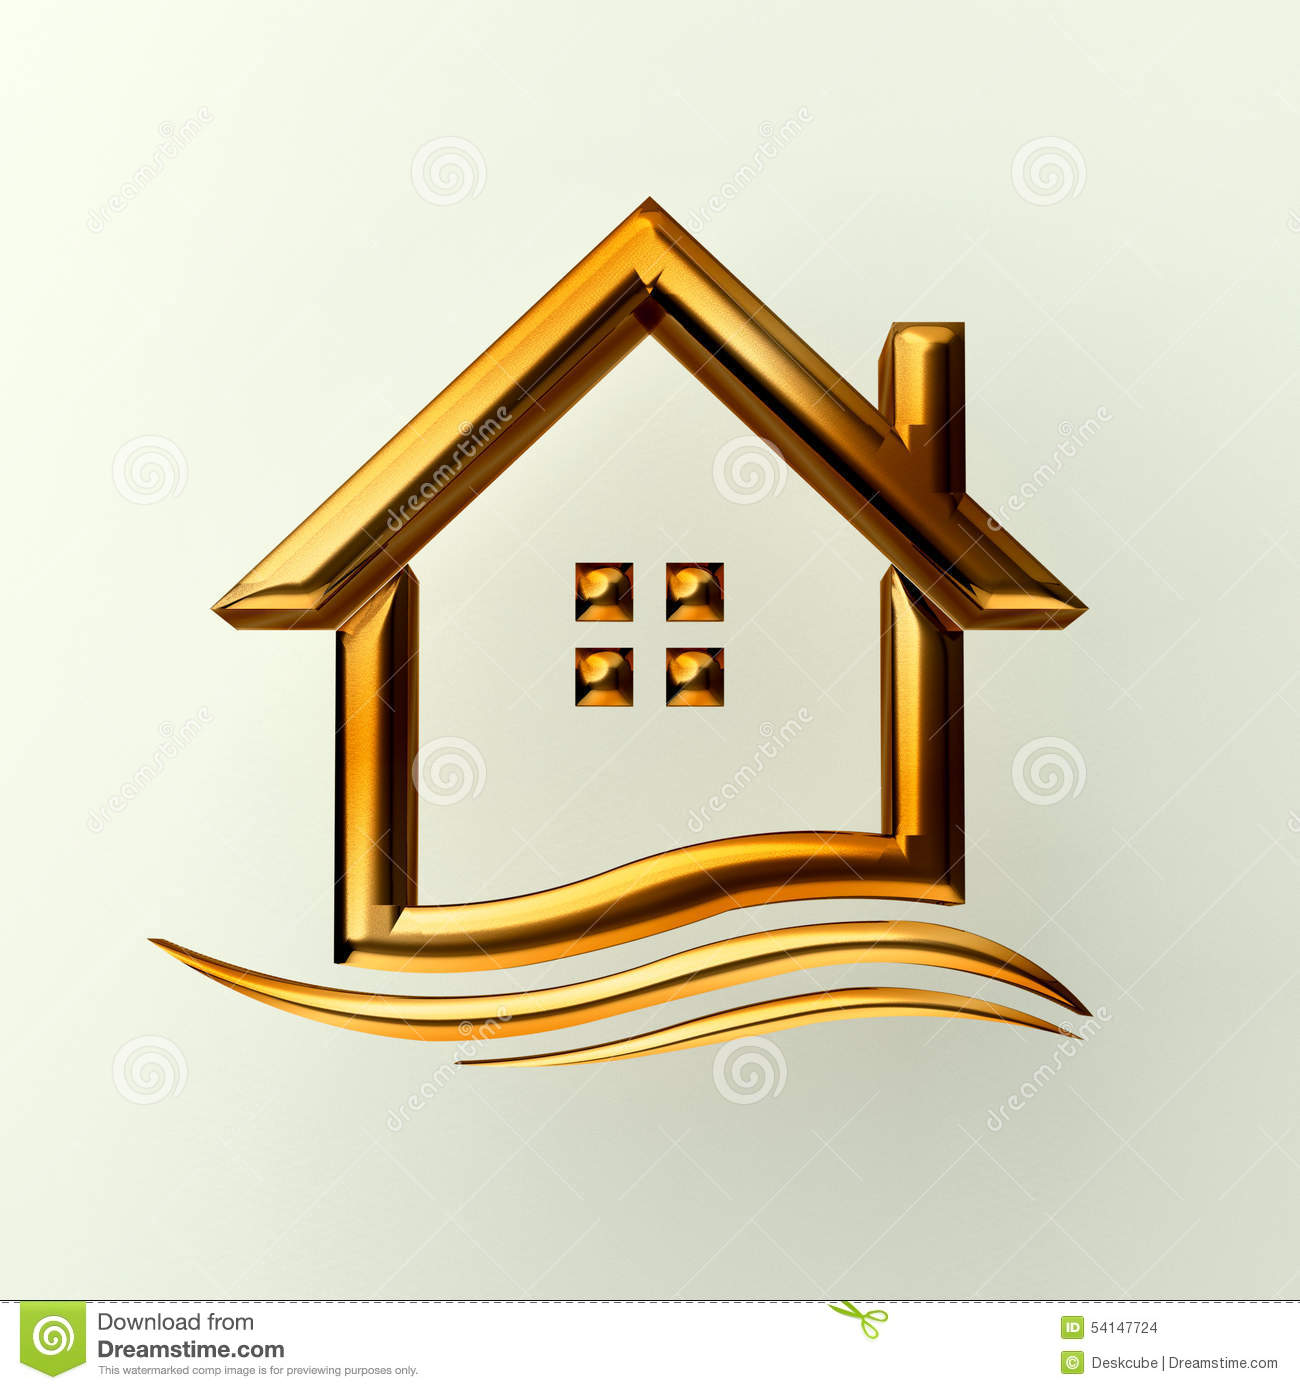 Gold House   Gold House Logo With Wave Stock Illustration Image Of Home  54147724